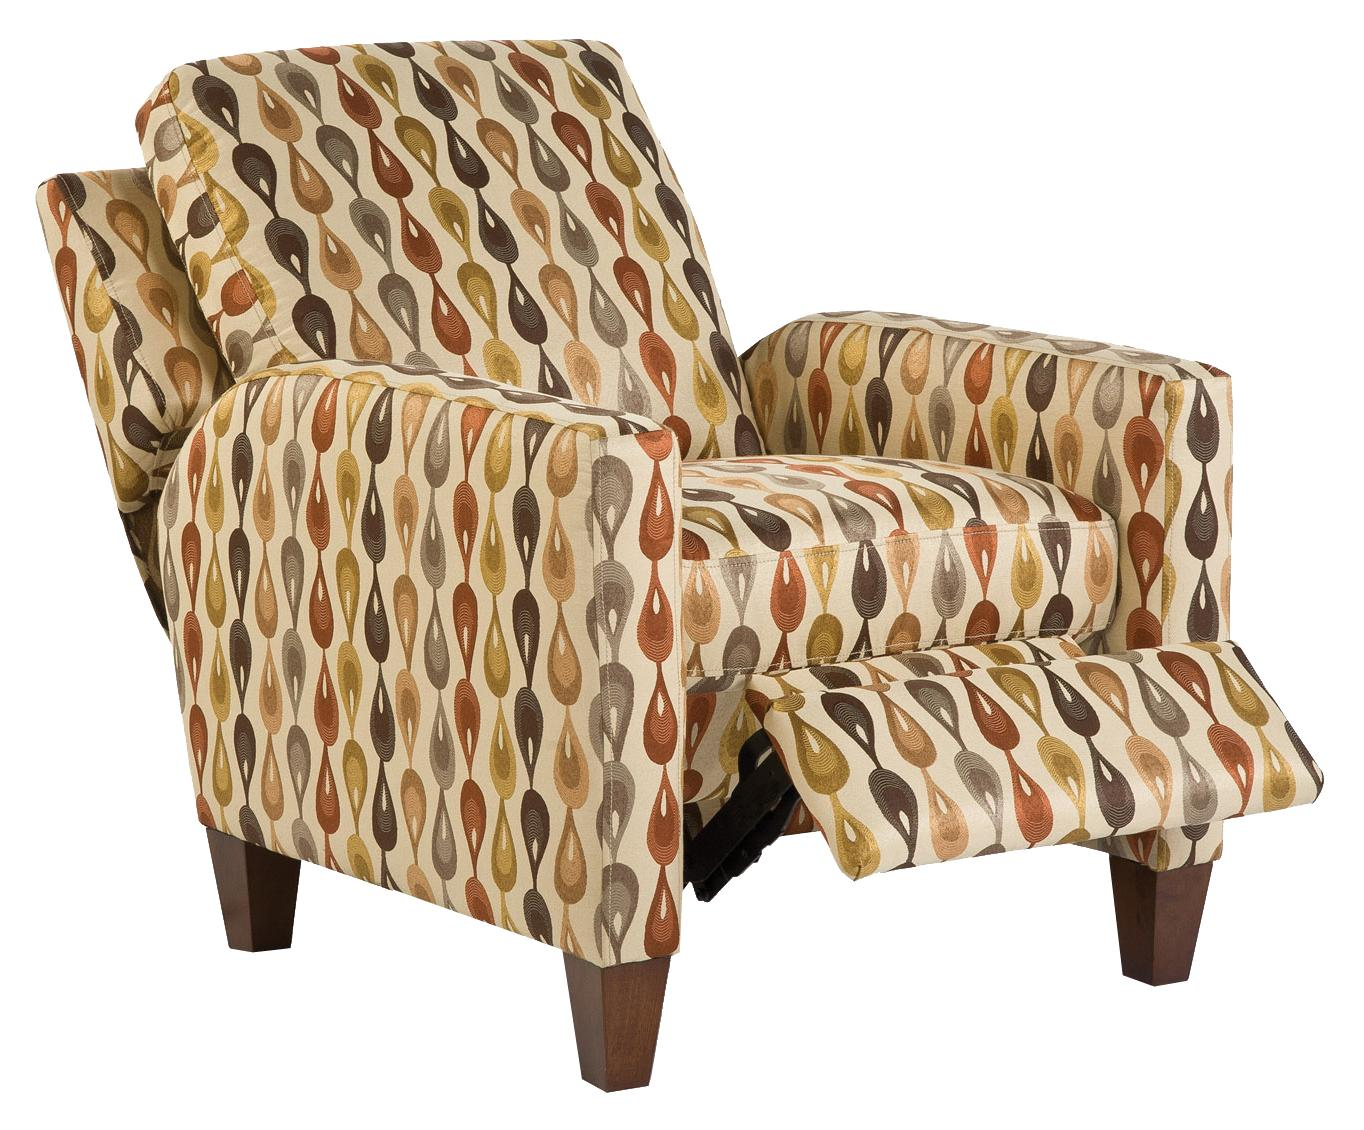 England Murray Living Room Push Back Arm Chair Recliner - Item Number: 760-31